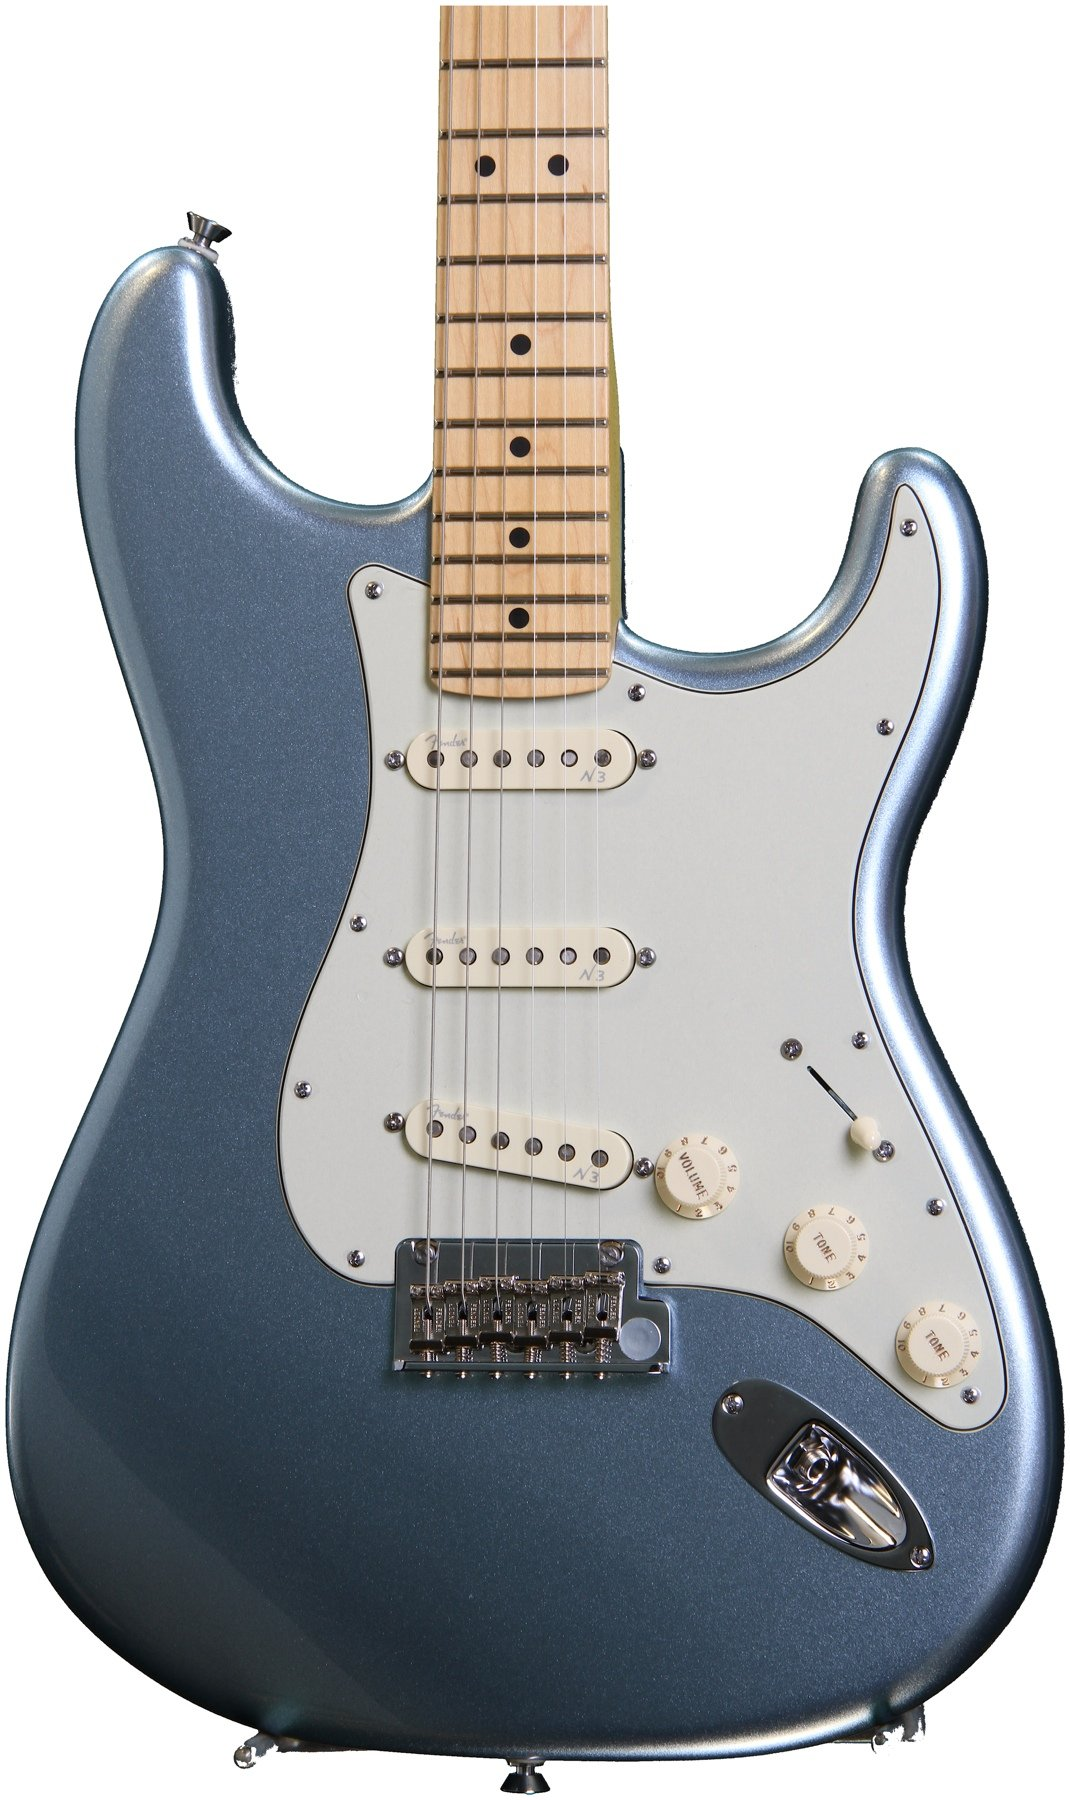 Fender american deluxe strat plus with personality cards mystic fender american deluxe strat plus with personality cards mystic ice blue image 1 freerunsca Choice Image